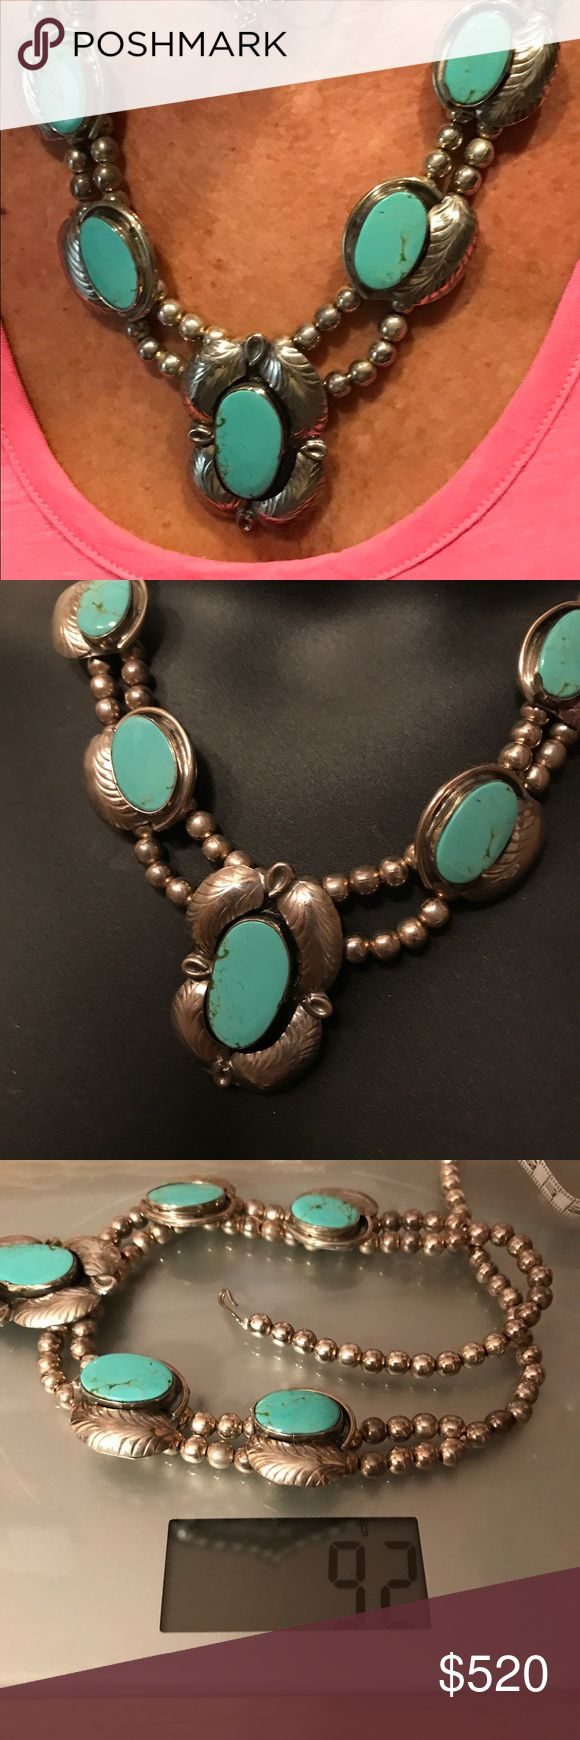 Vintage SS/turquoise Squash necklace this is a vintage Sterling silver and sleeping beauty turquoise Squash necklace. An estate sale find .. relatives didn't know where they had gotten but knew it had been in the family for years. It was a diff makers mark and usually this type of Squash artistic design comes from the native Americans as to why it says made in Mexico, they weren't sure. Which made it even more intriguing... Gorgeous  statement piece!! Each turquoise piece measures around 1…